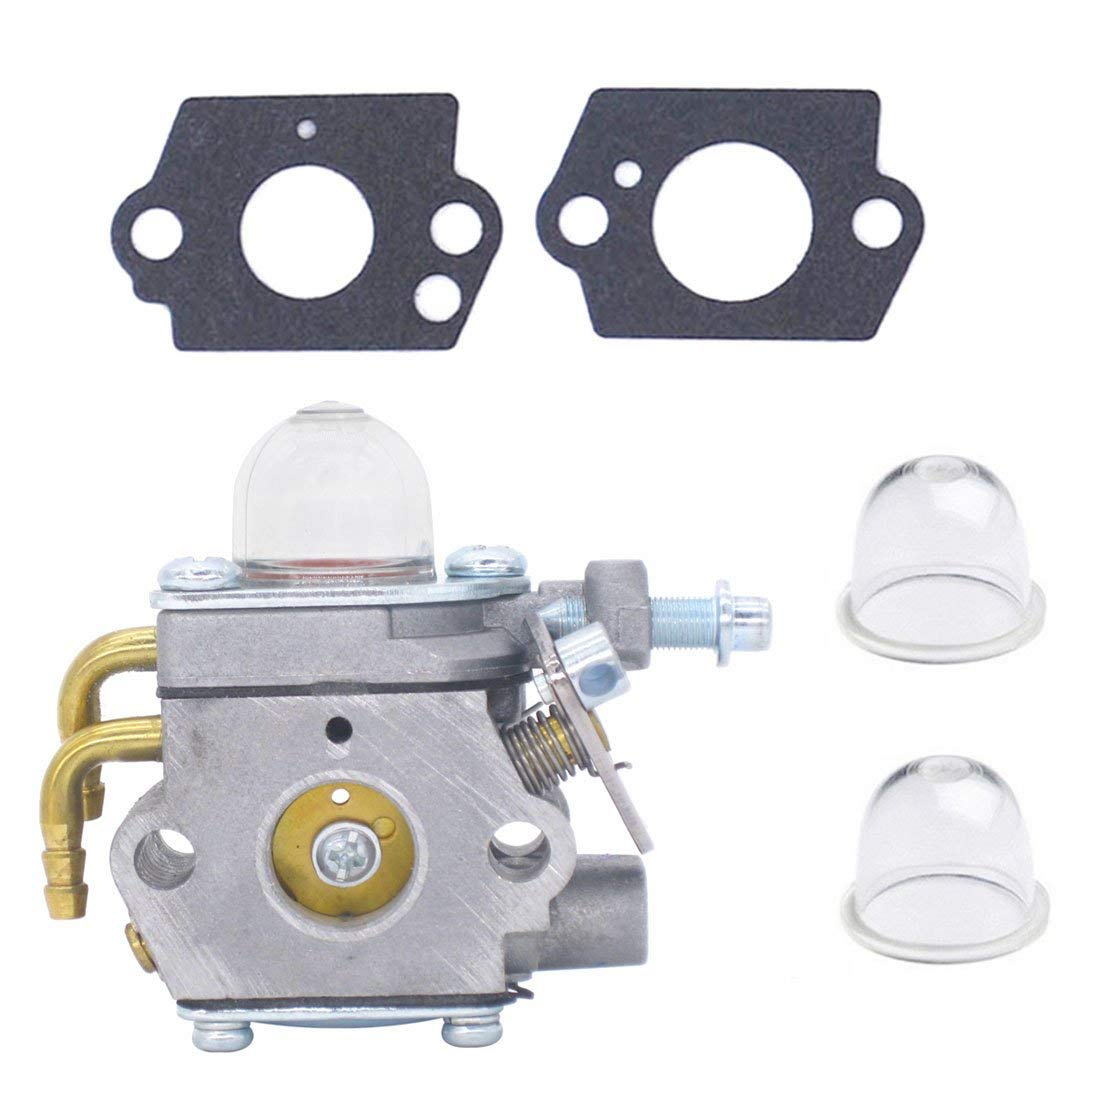 Atoparts Carburetor with Gasket Primer Bulb 308054001 for Homelite UT-21506 UT-21907 UT-21546 UT-21566 UT-21947 UT21967 26CC Edger String Trimmer Blower